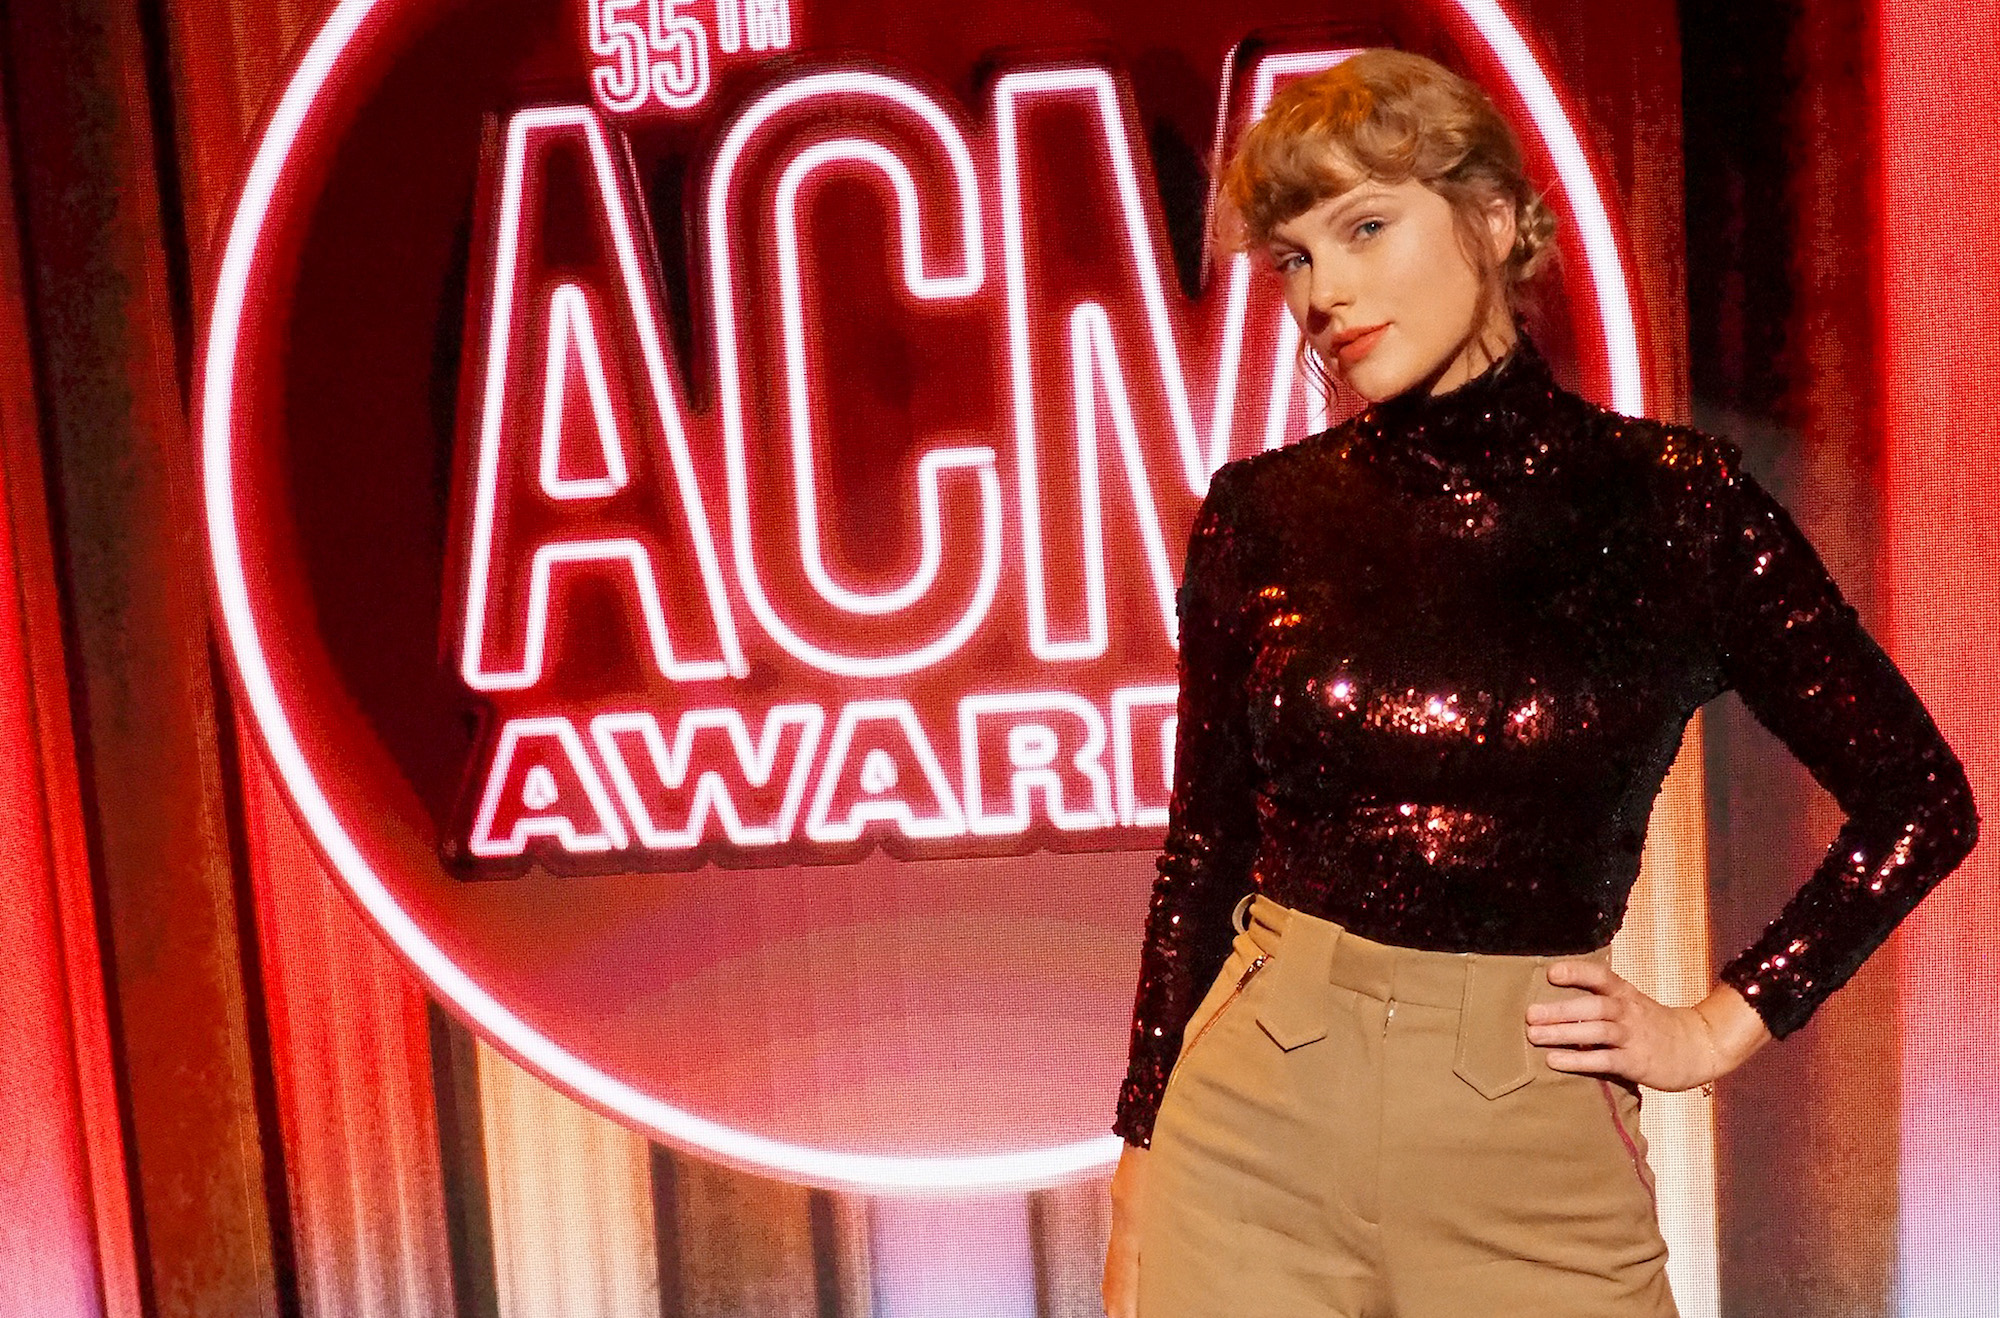 Taylor Swift at the 55th Academy of Country Music Awards on Sept. 16, 2020